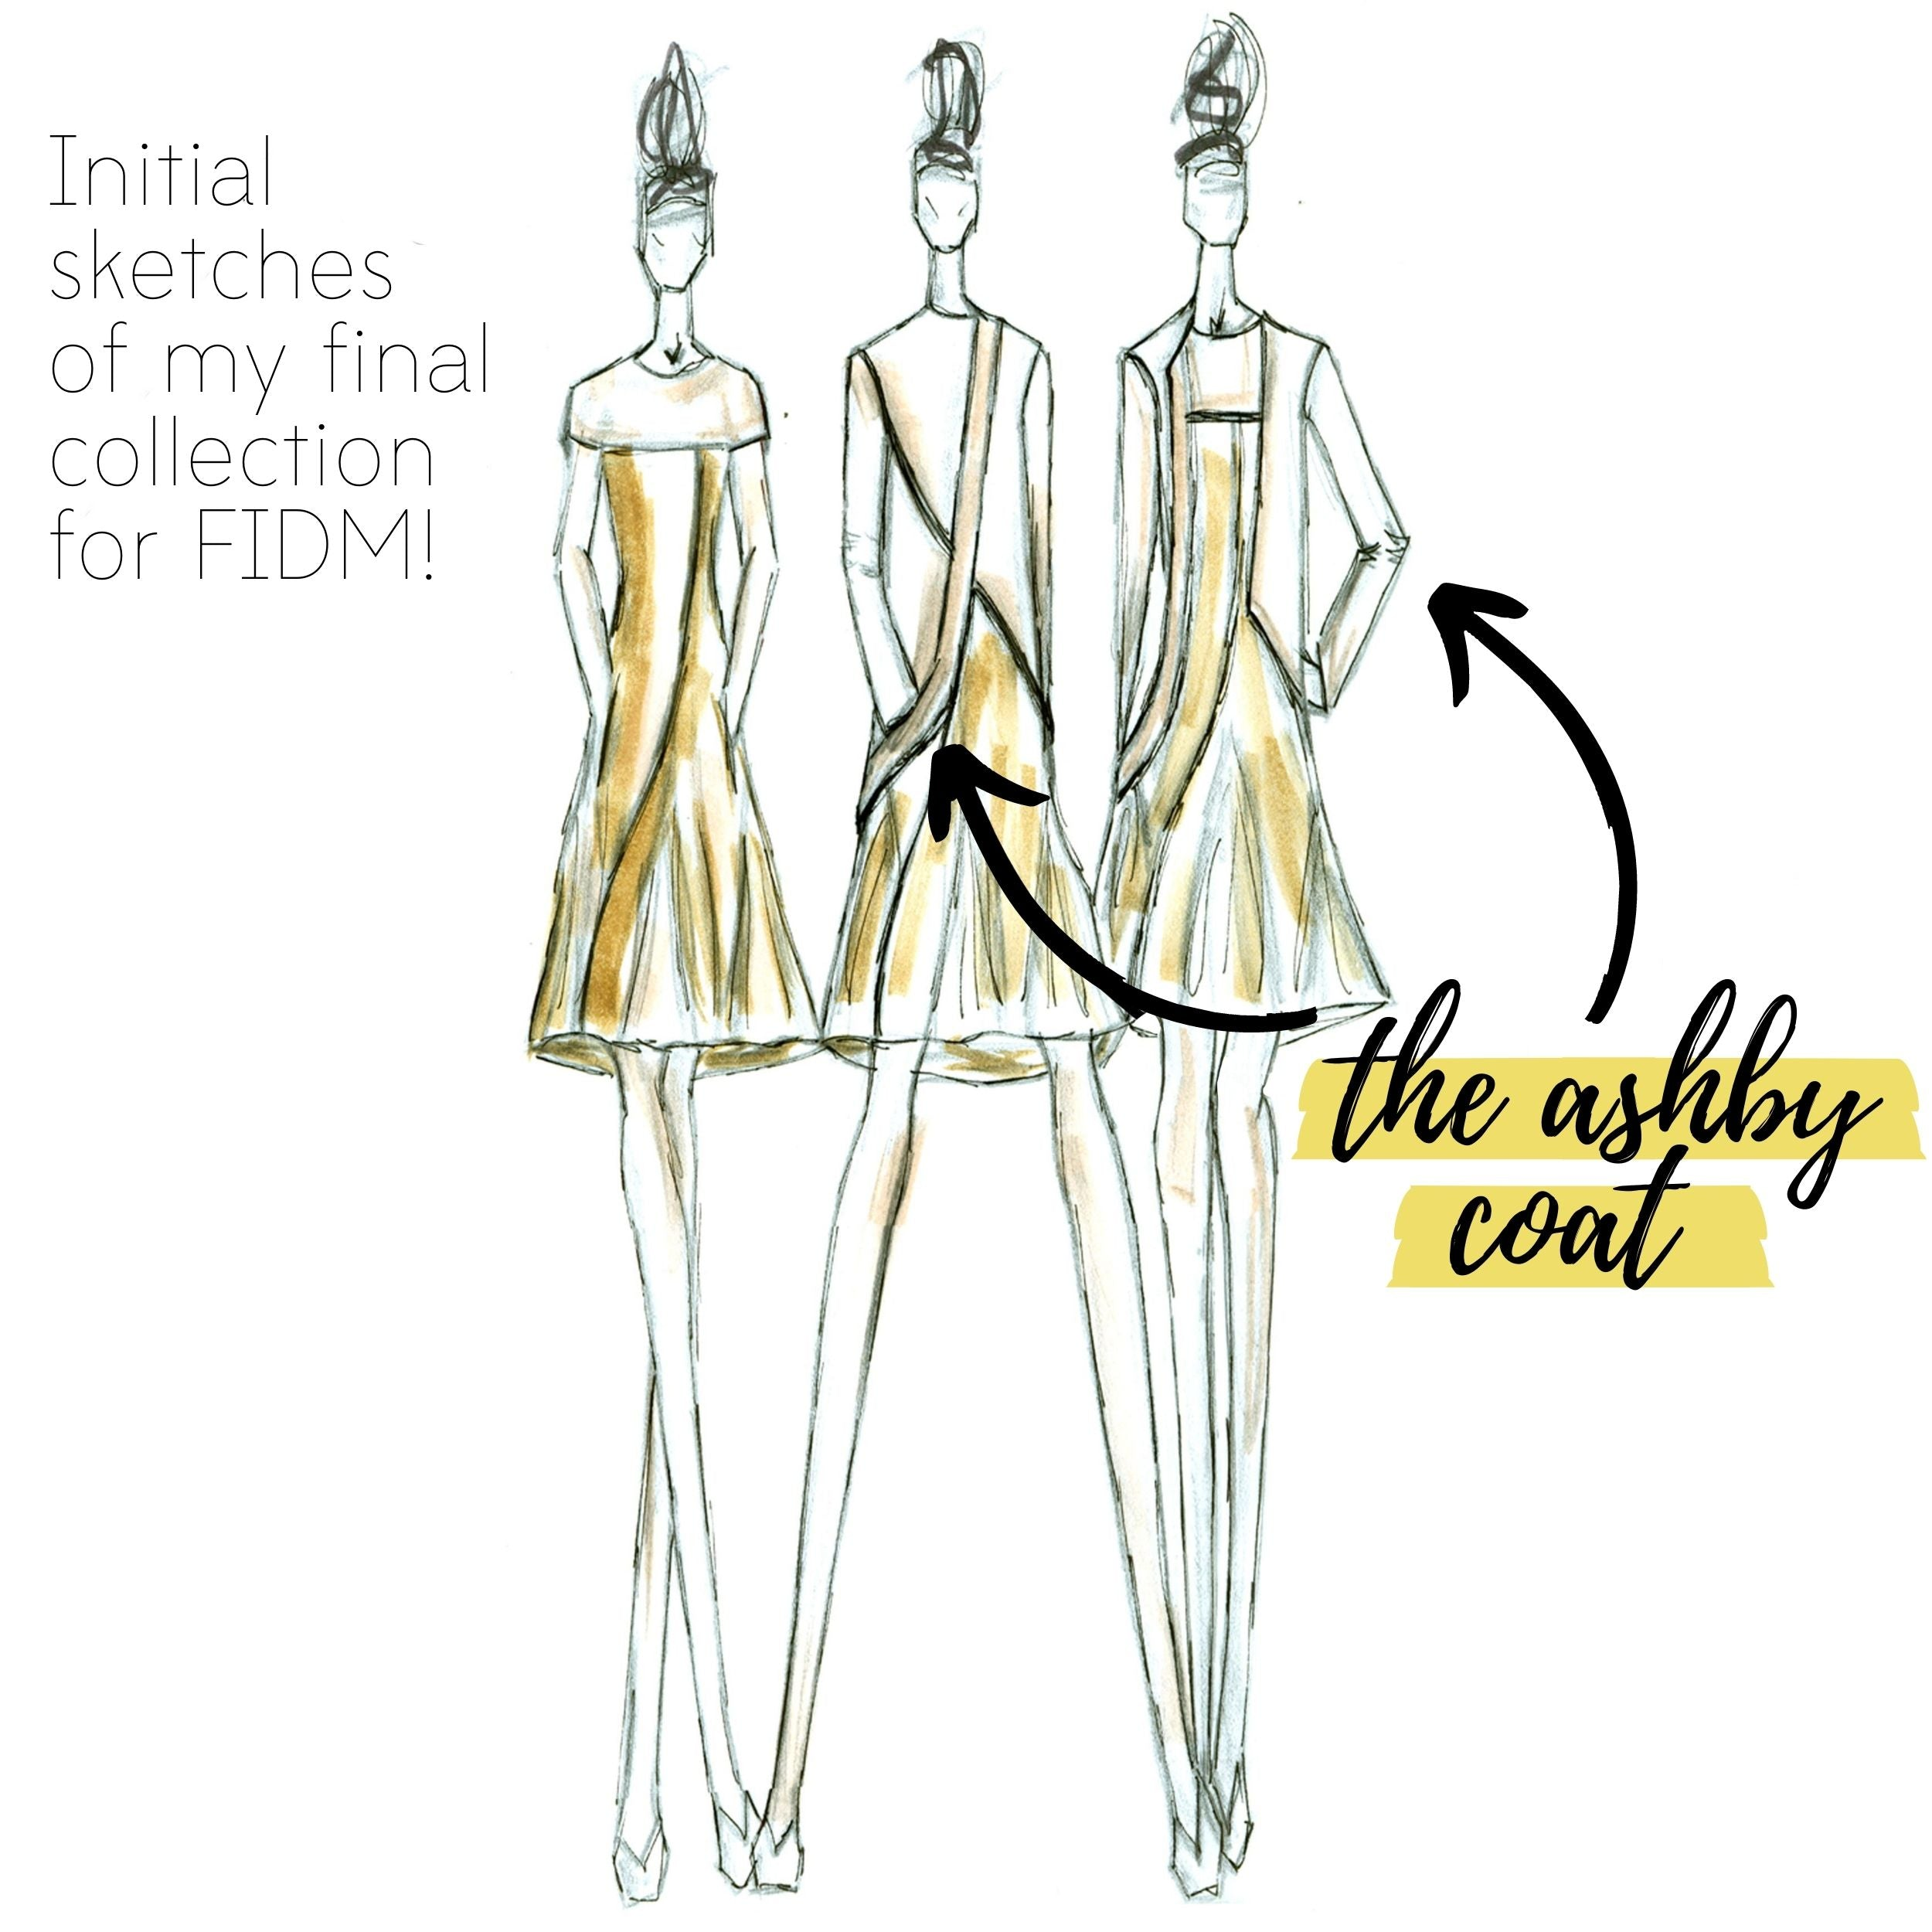 The Ashby Coat Sewing Project FIDM Original Sketches